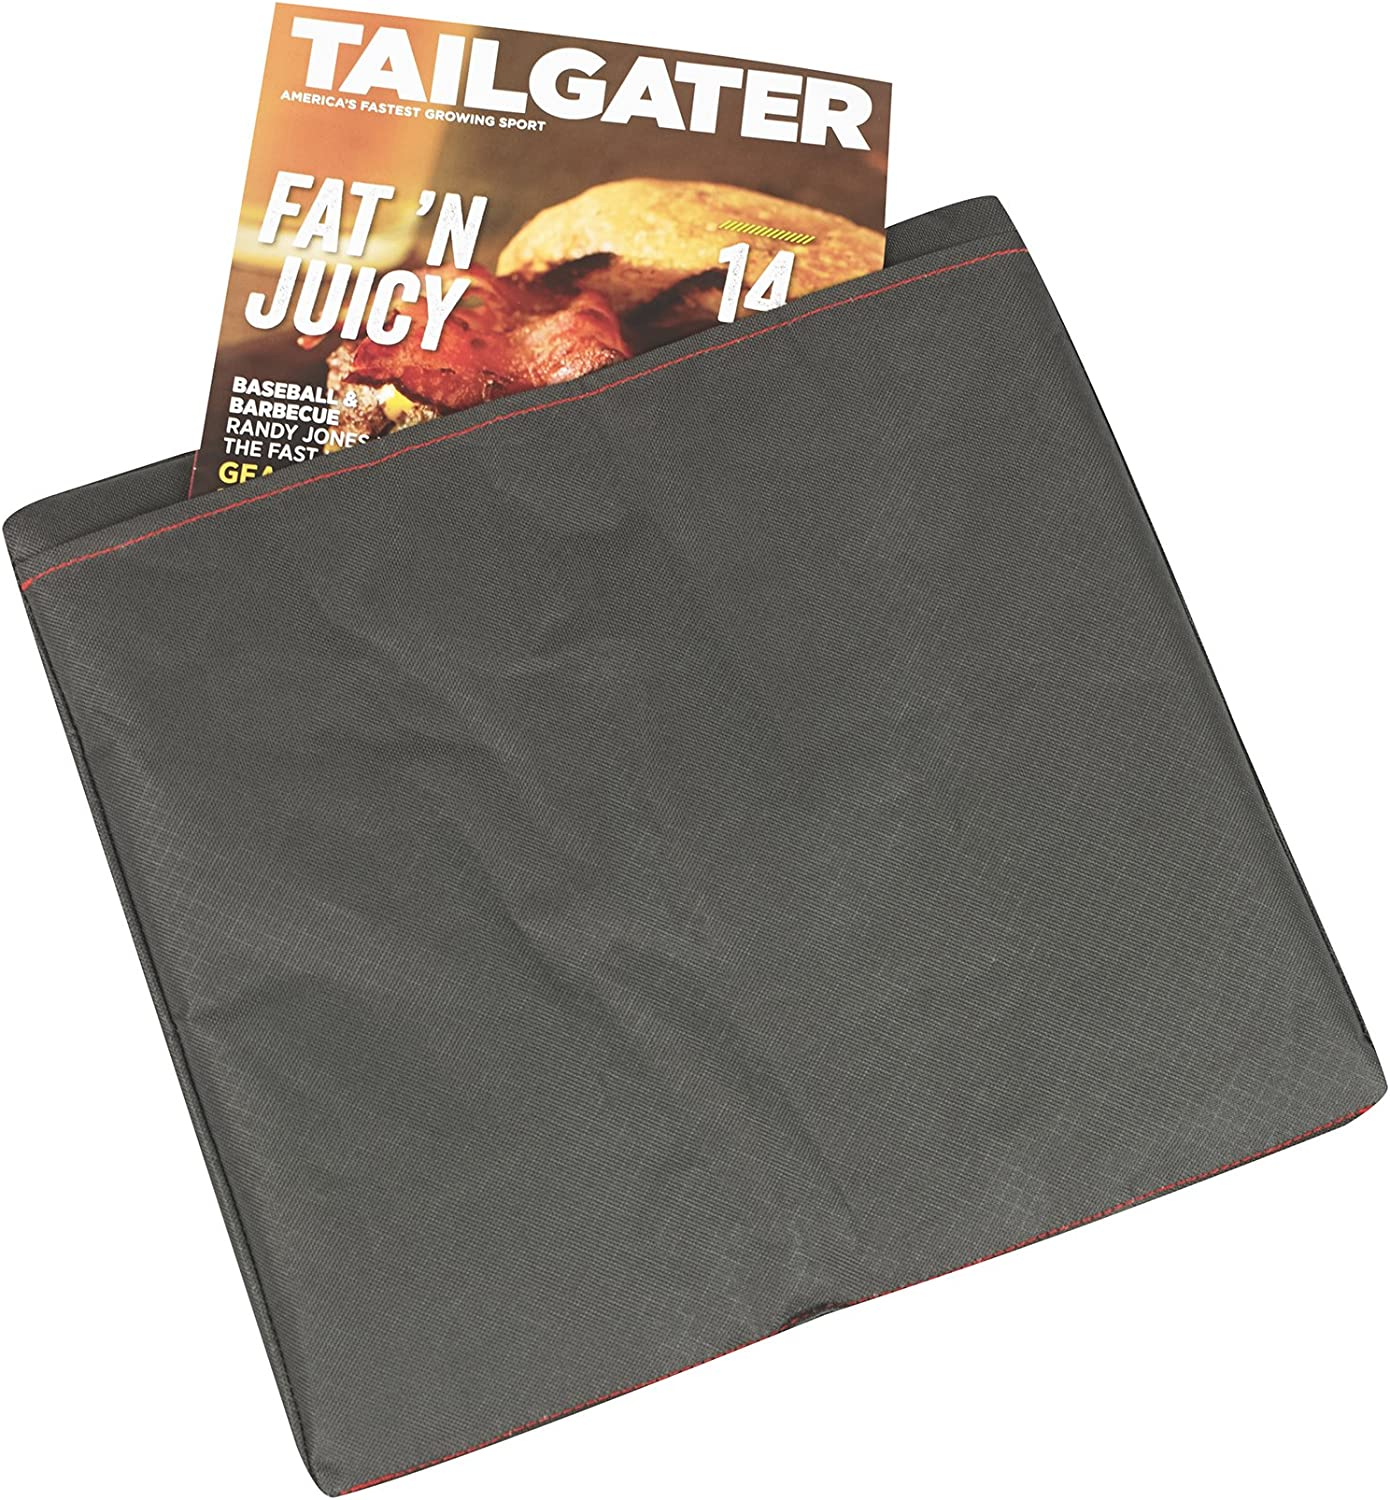 Tailgaterz Take-Out Seat Steel Chair, Game Day Graphite: Amazon.co